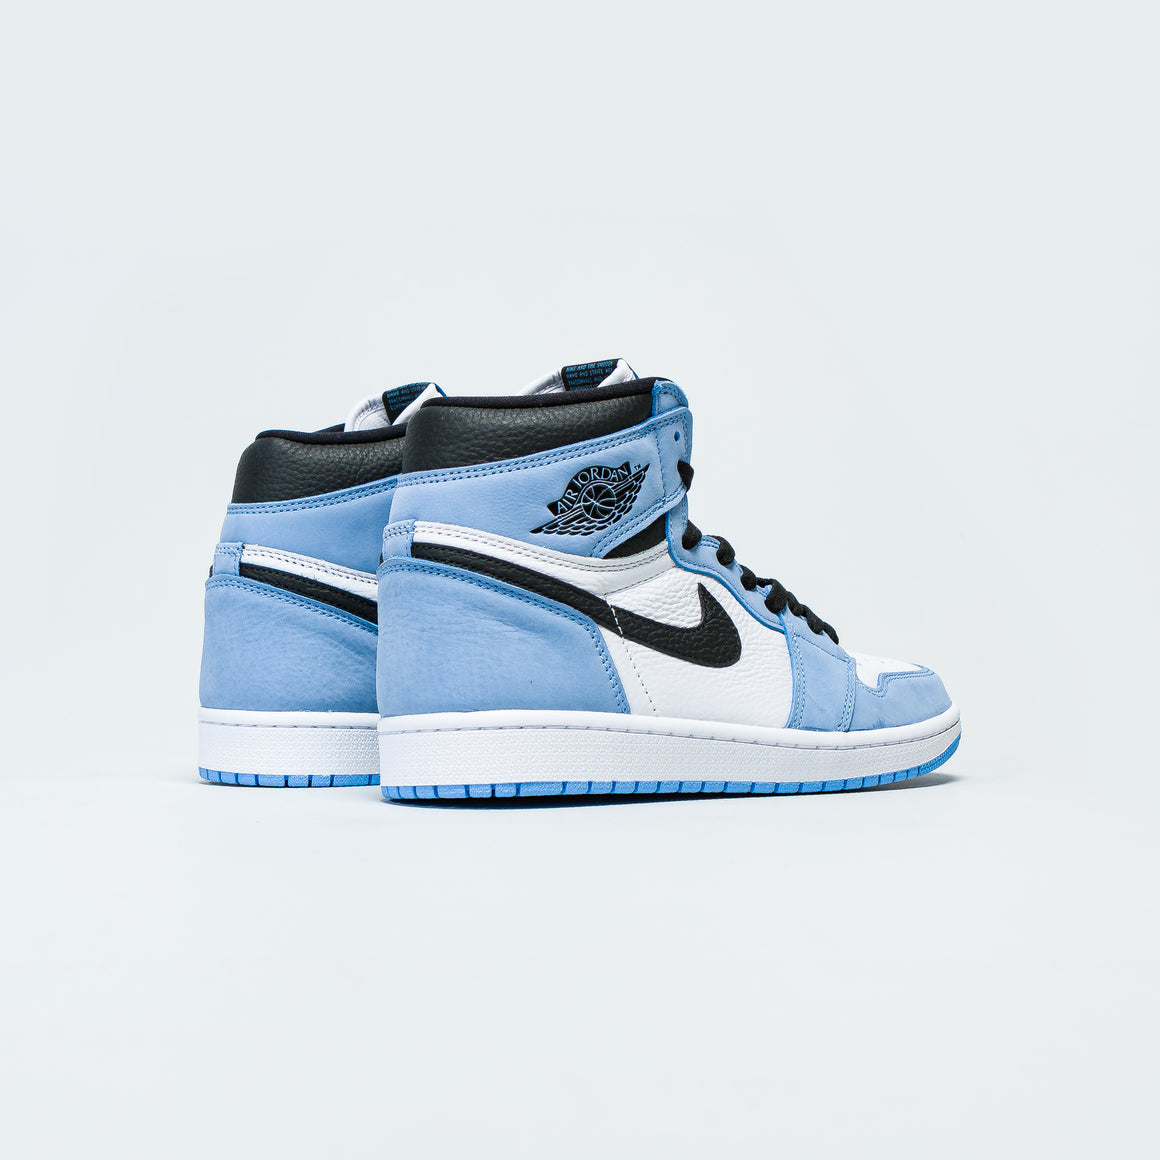 Jordan - Air Jordan 1 Retro High OG - White/Black-University Blue - Up There